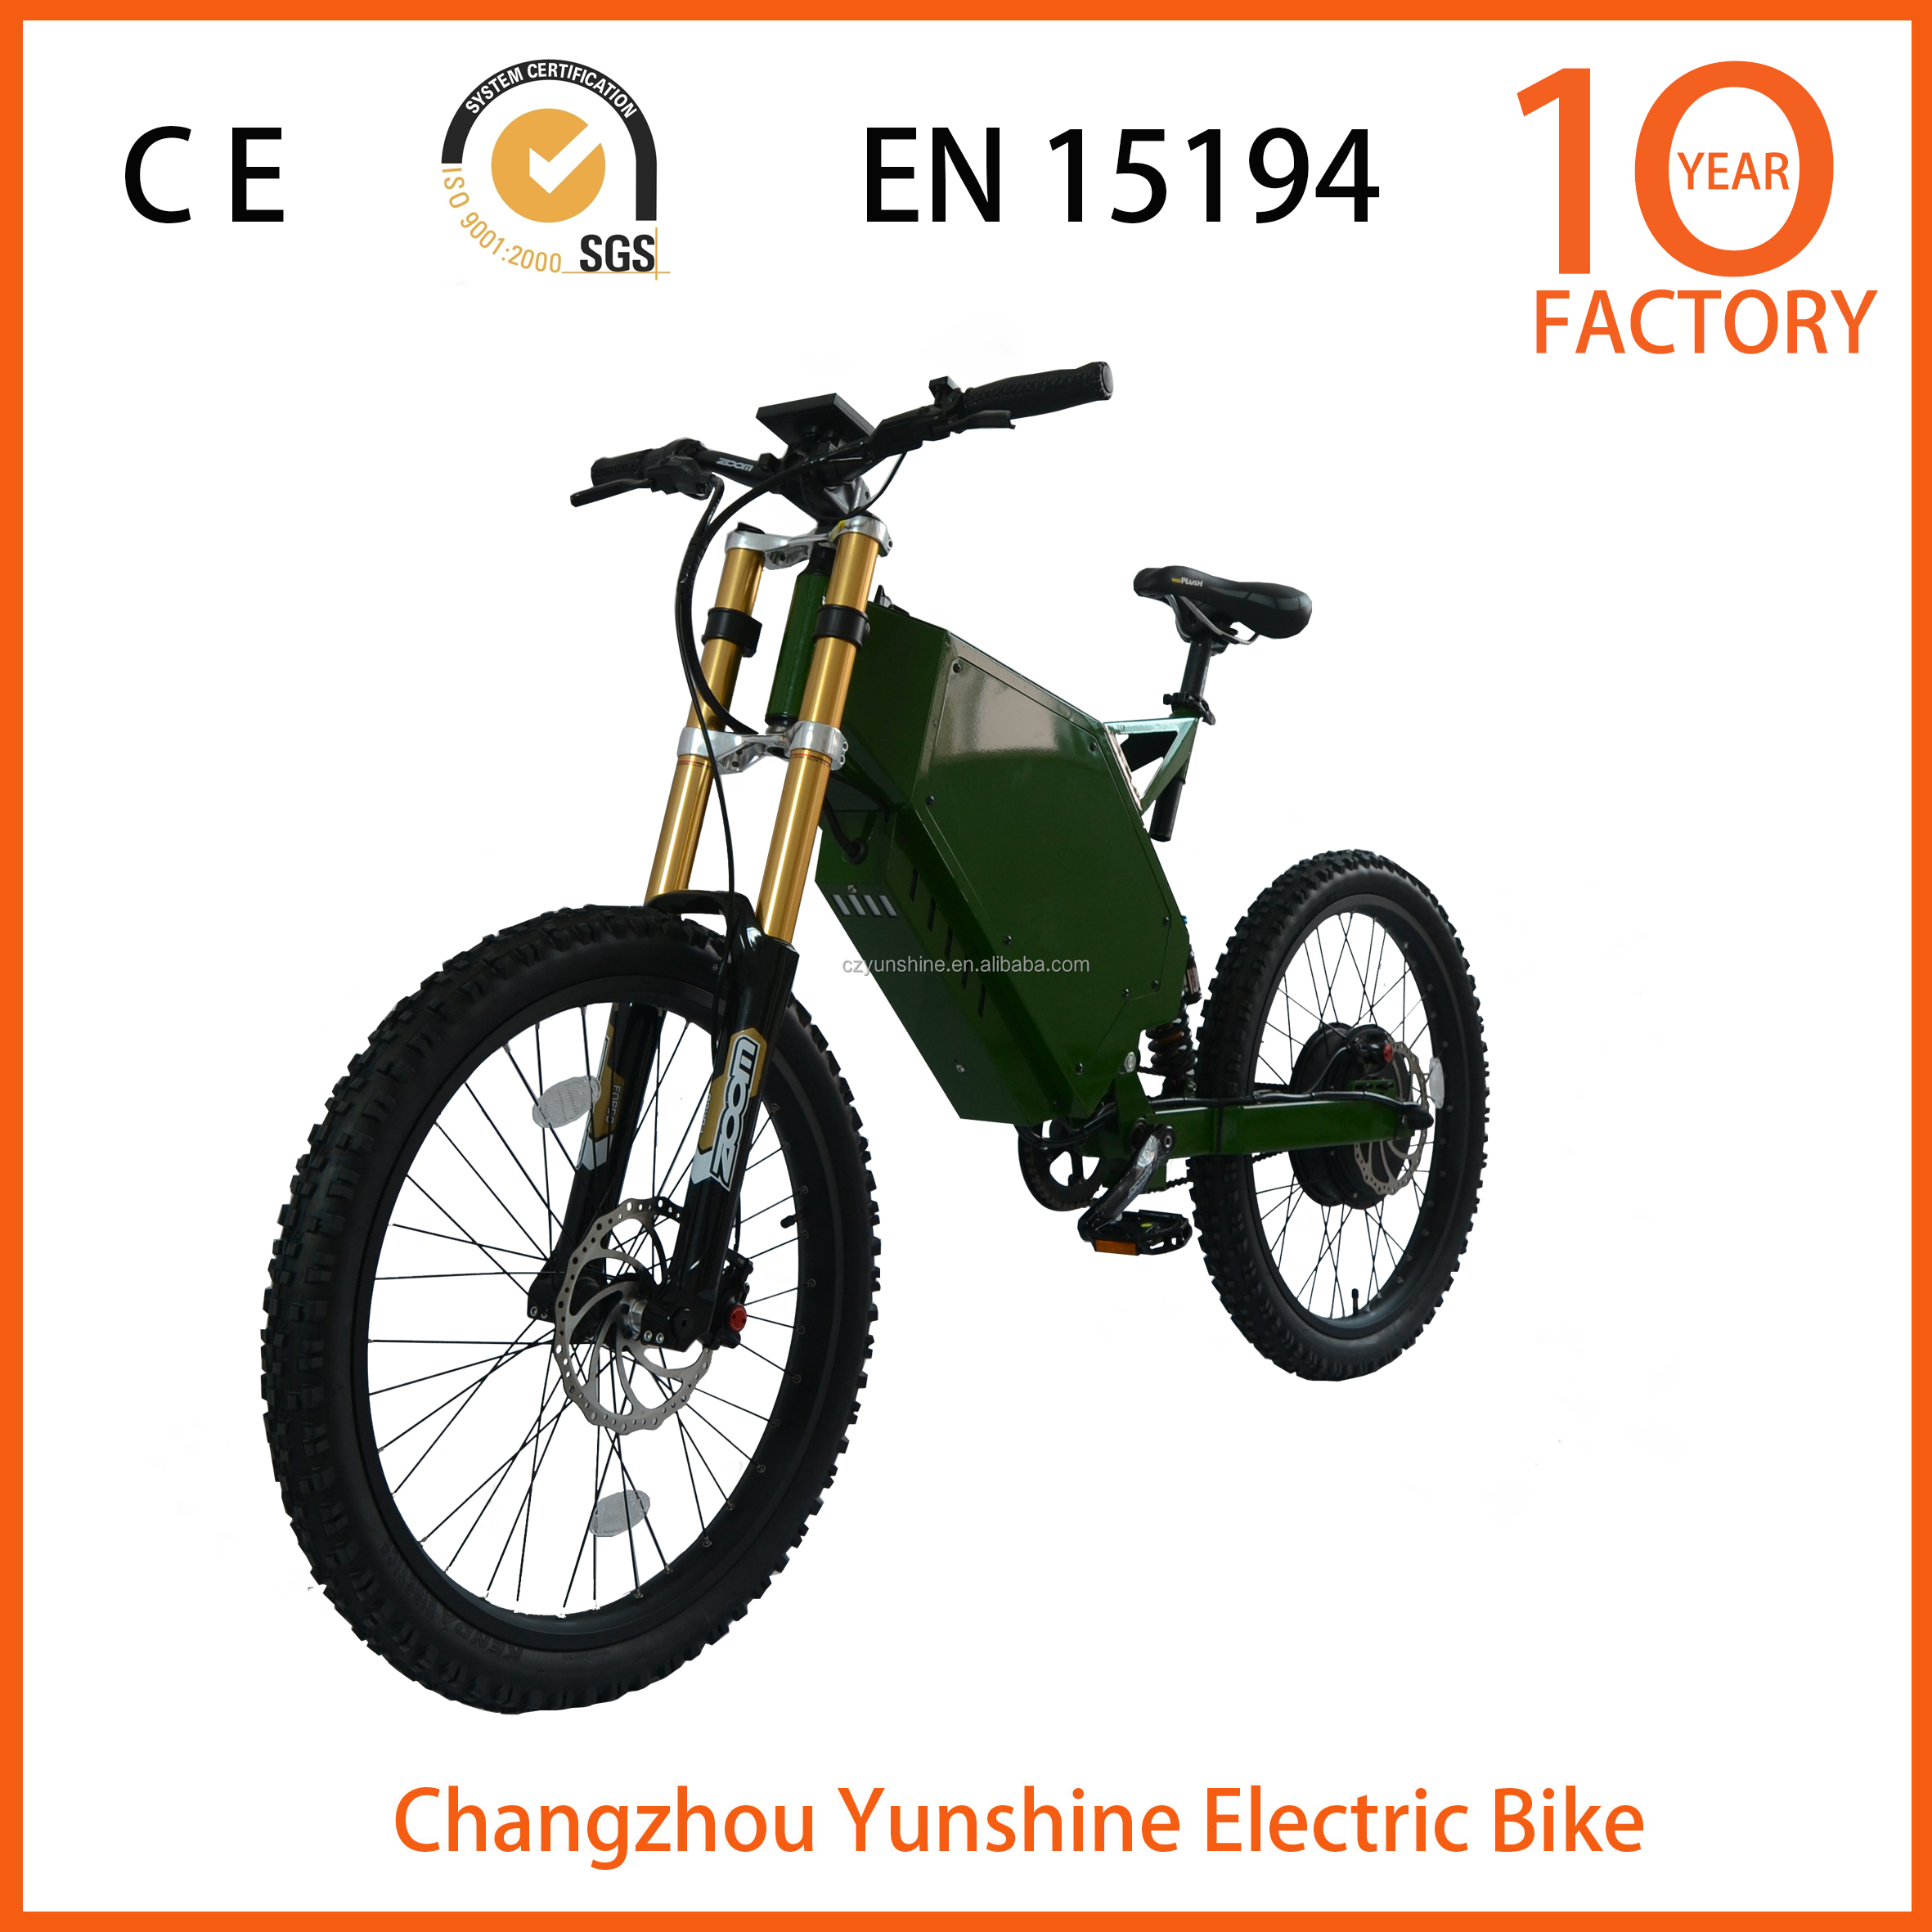 Changzhou Yunshine 48v 3000w motor electric motorcycle, electric bike 1000w 48v